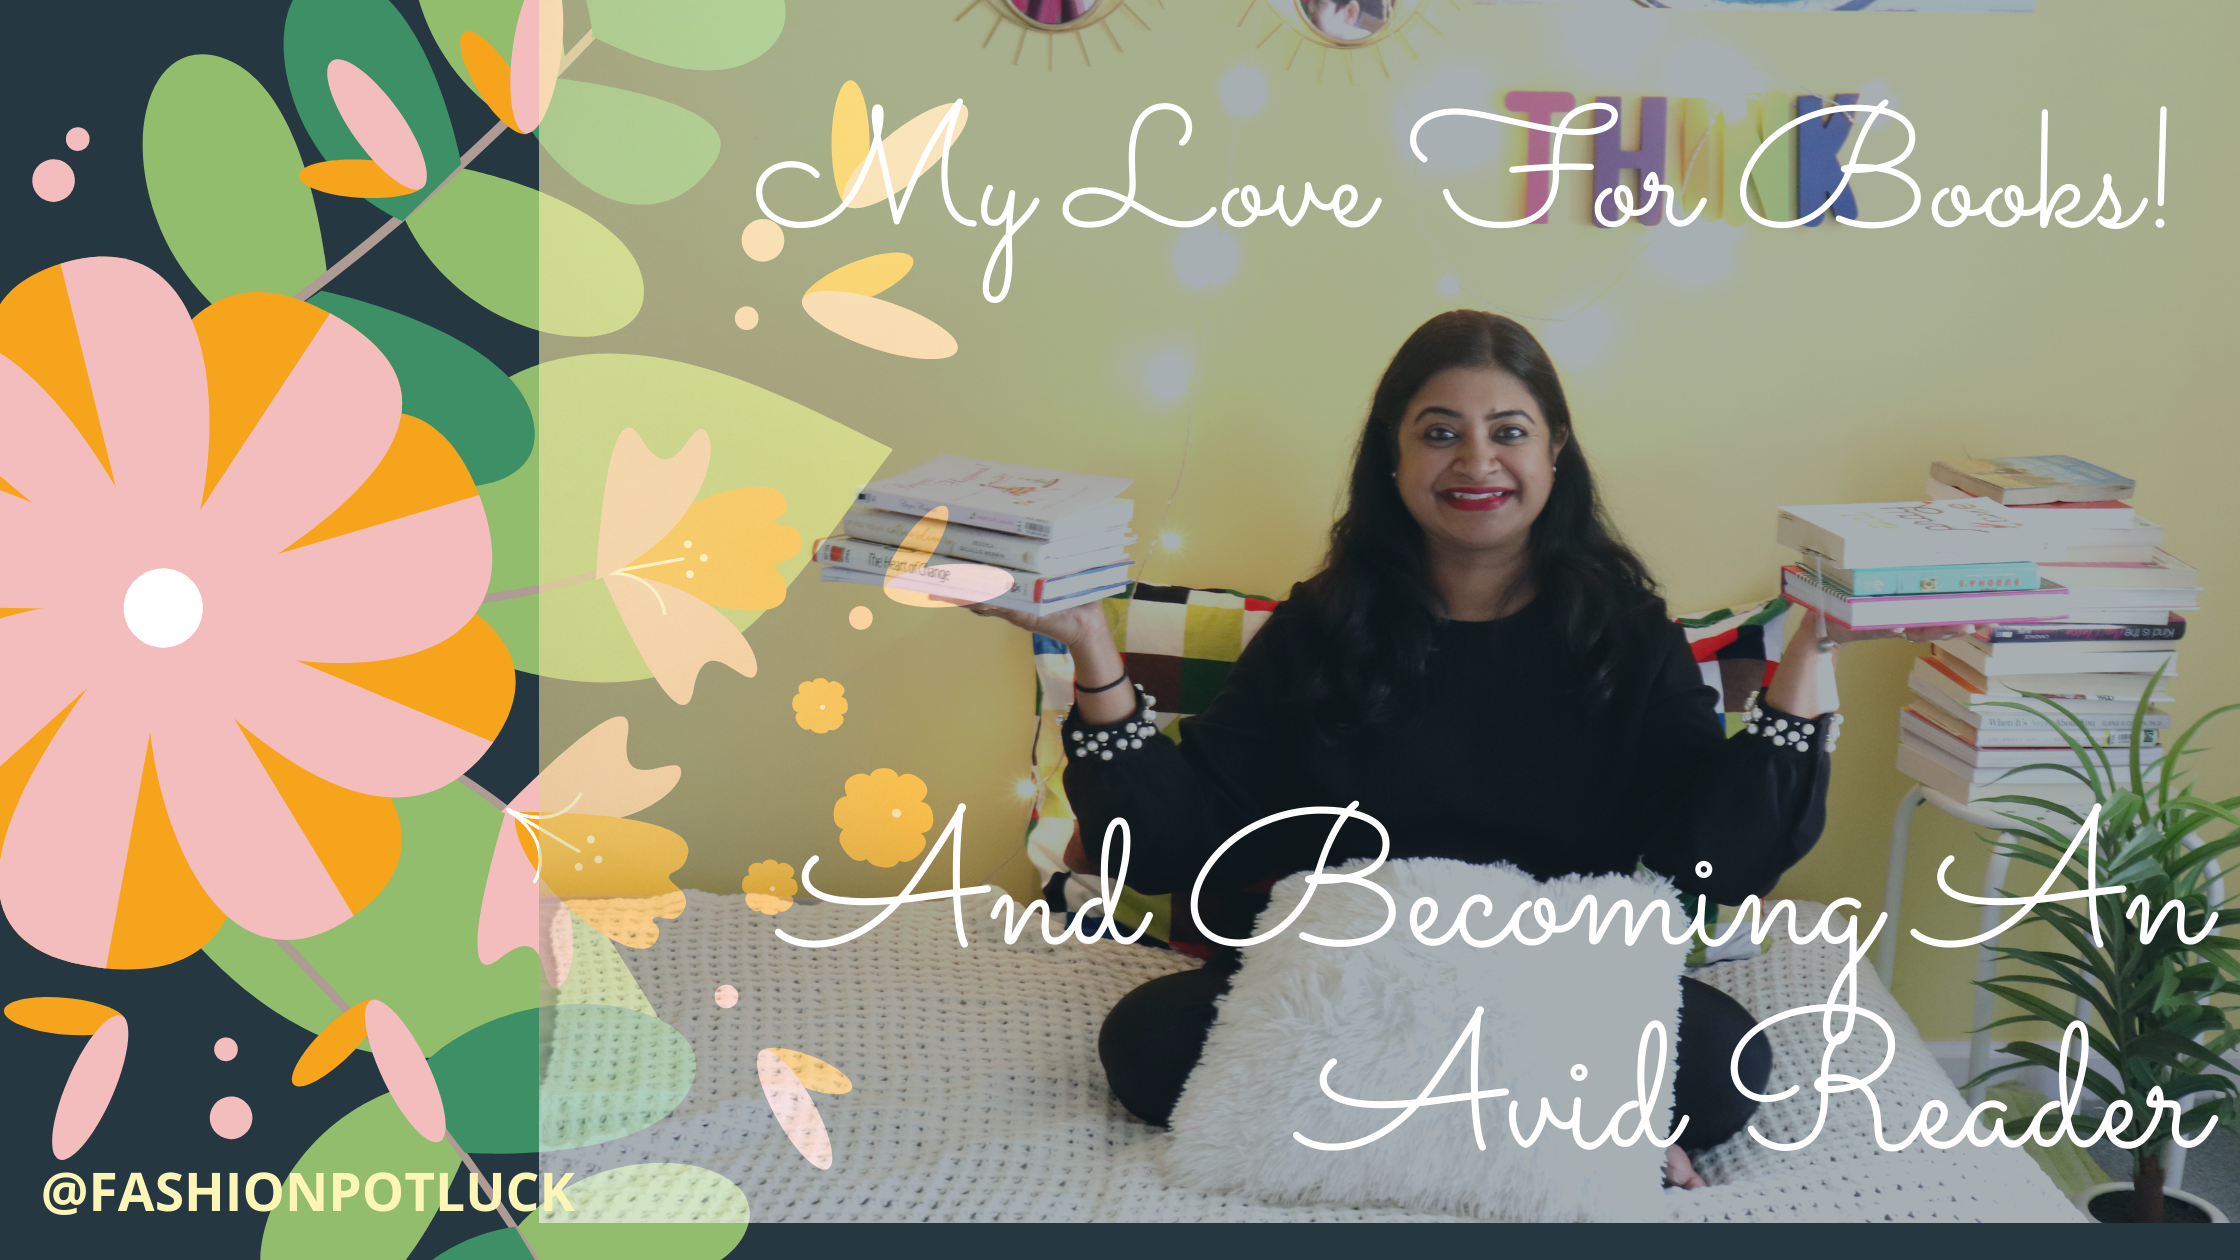 How My Love For Books Instilled A Lasting Love of Reading And Made Me An Avid Reader